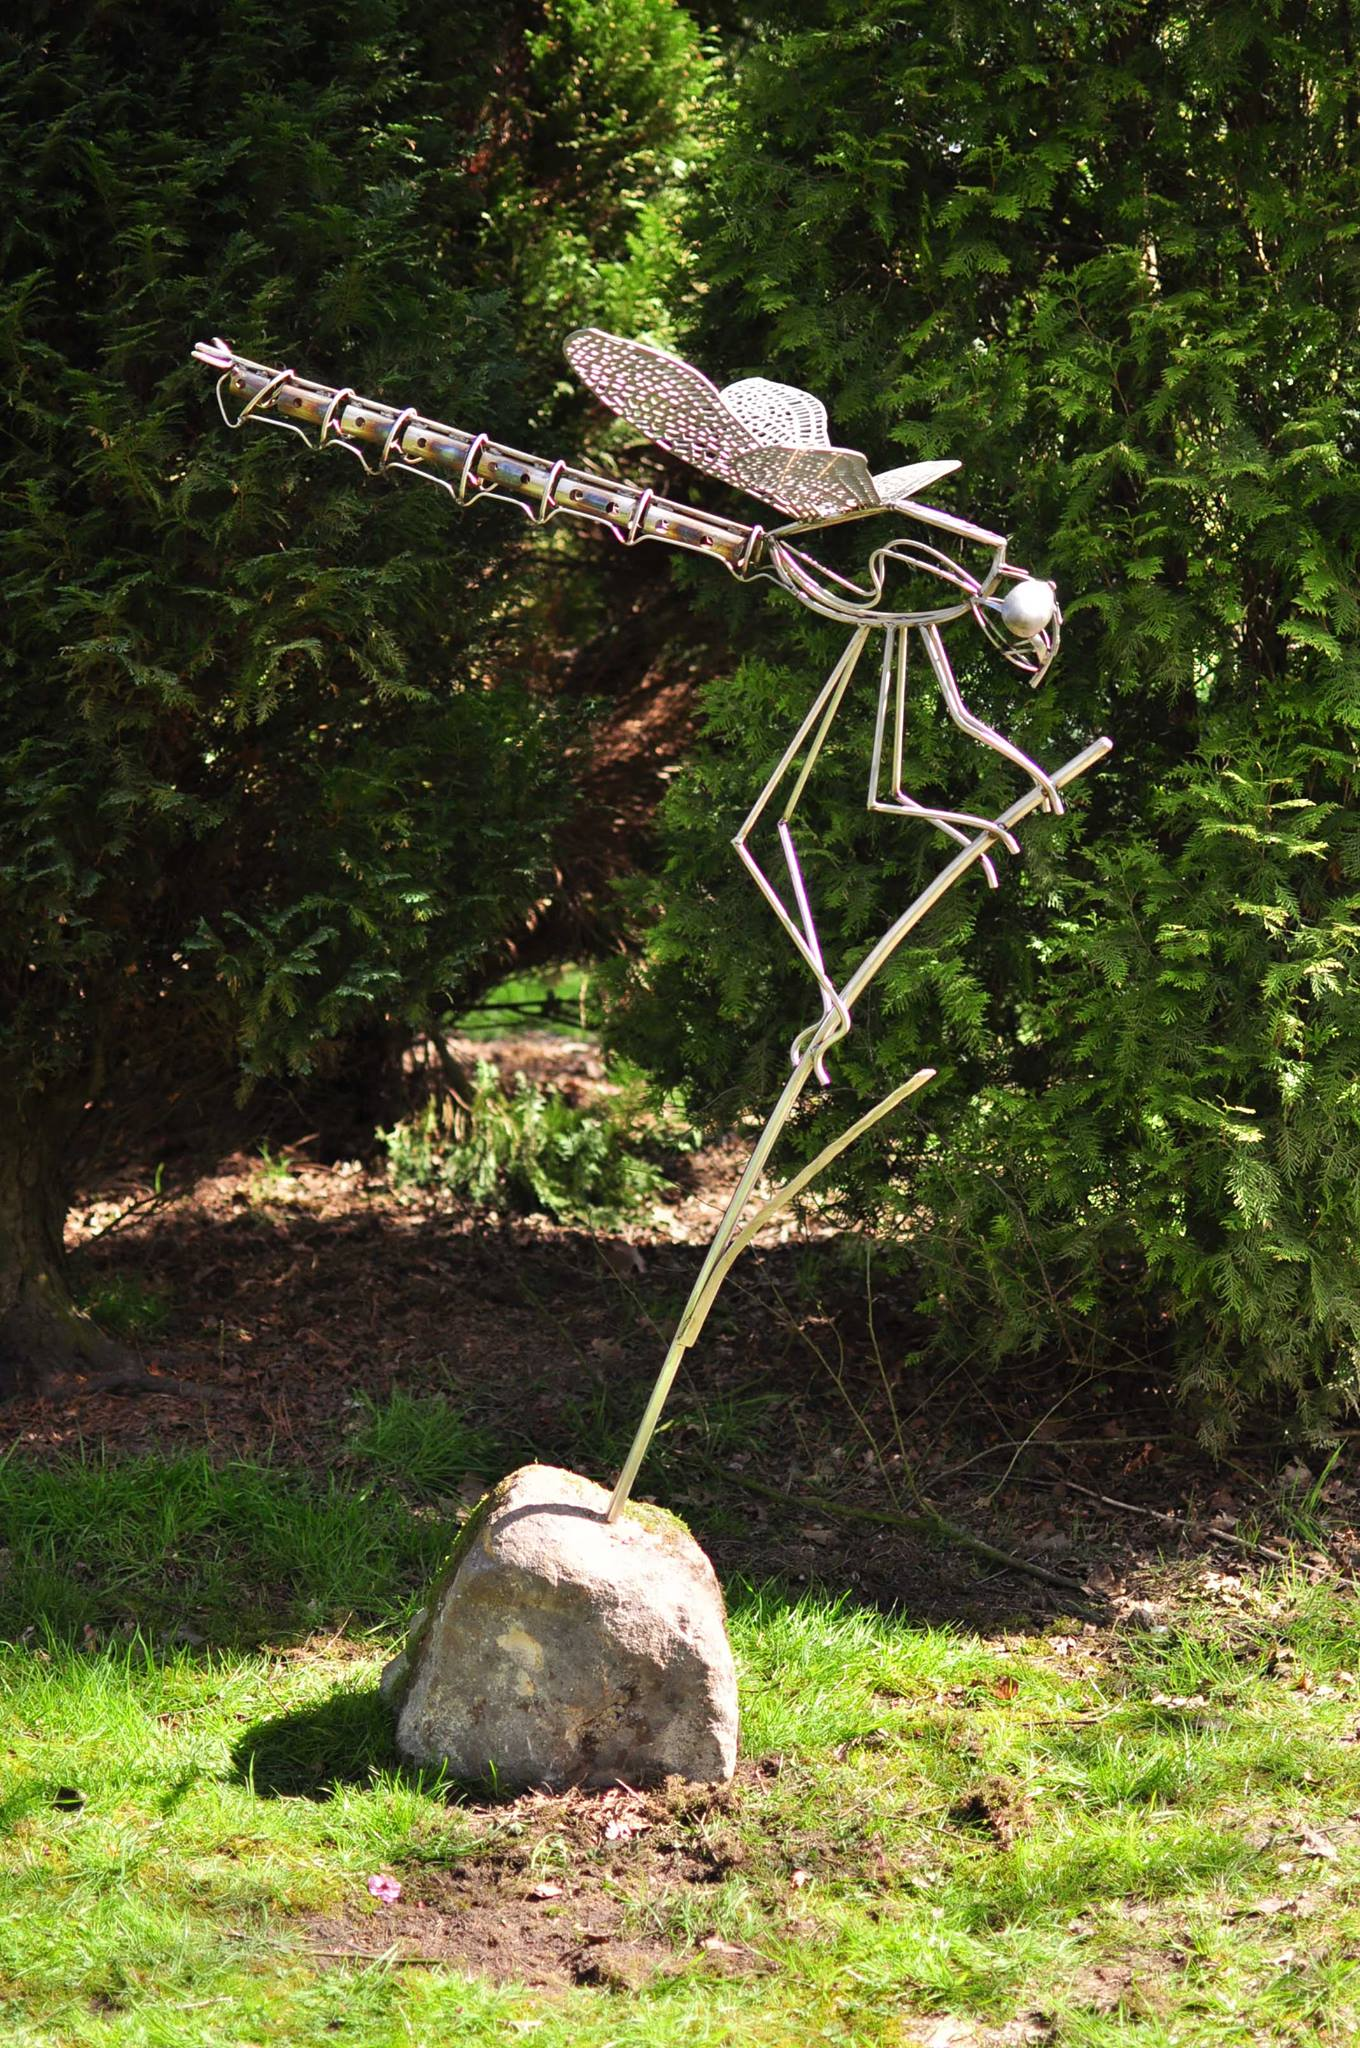 David Freedman – Stainless steel dragonfly sculpture